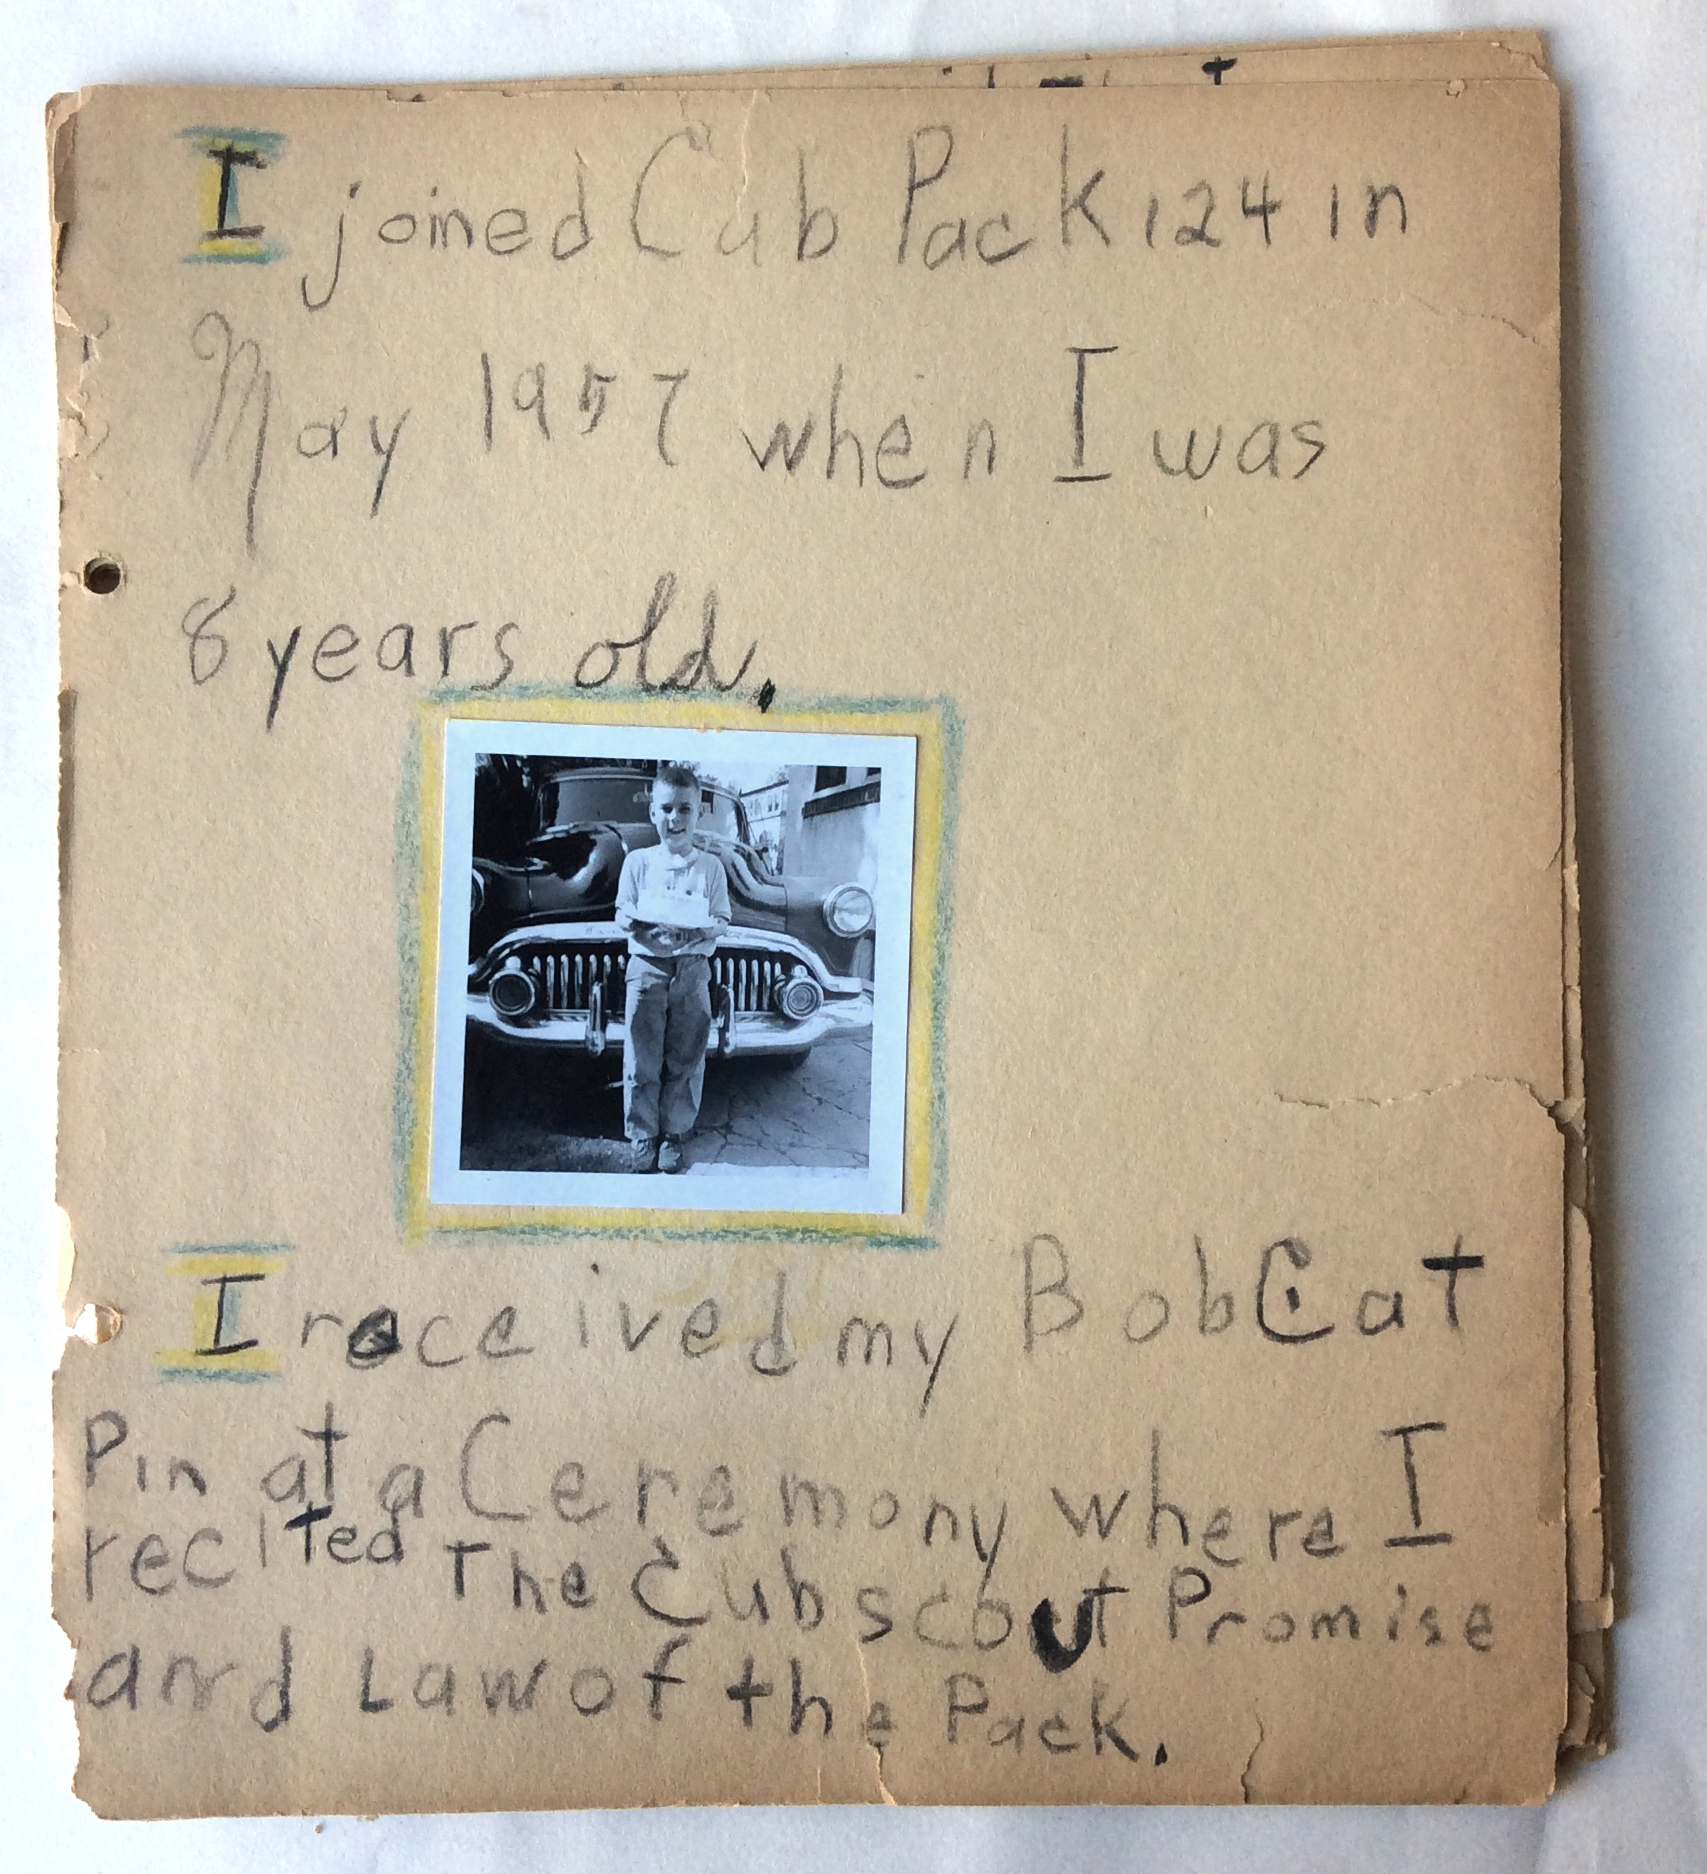 Cub Scout Log Book